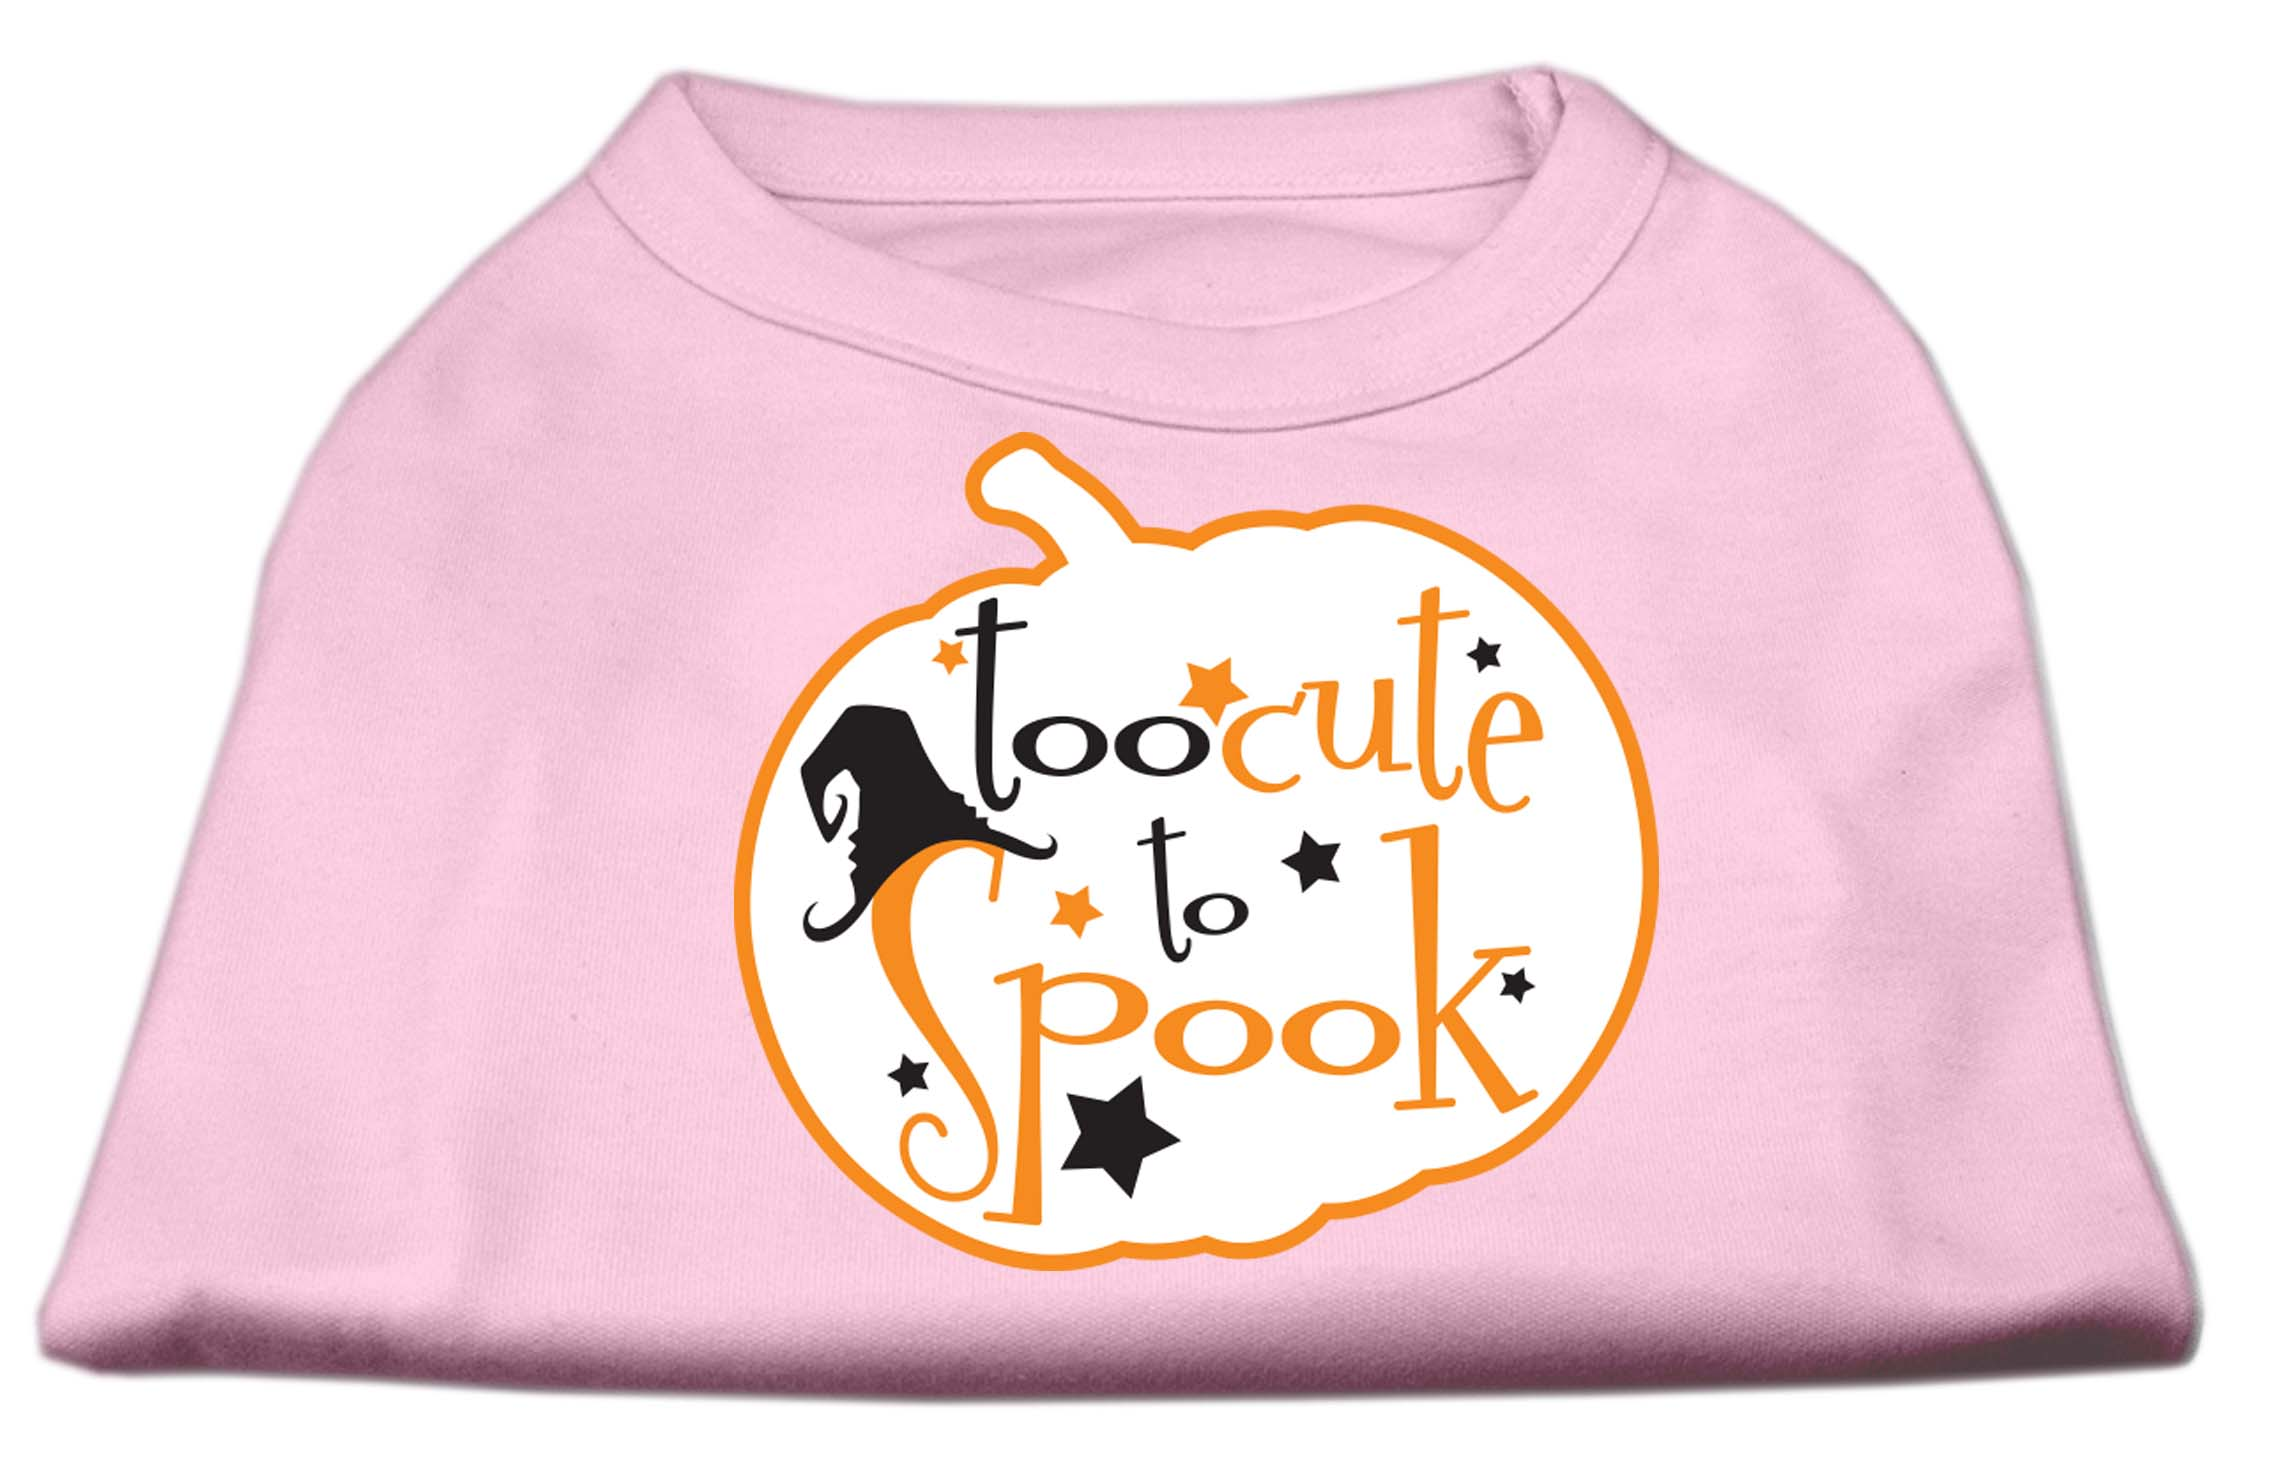 Too Cute to Spook Screen Print Dog Shirt Light Pink XS (8)